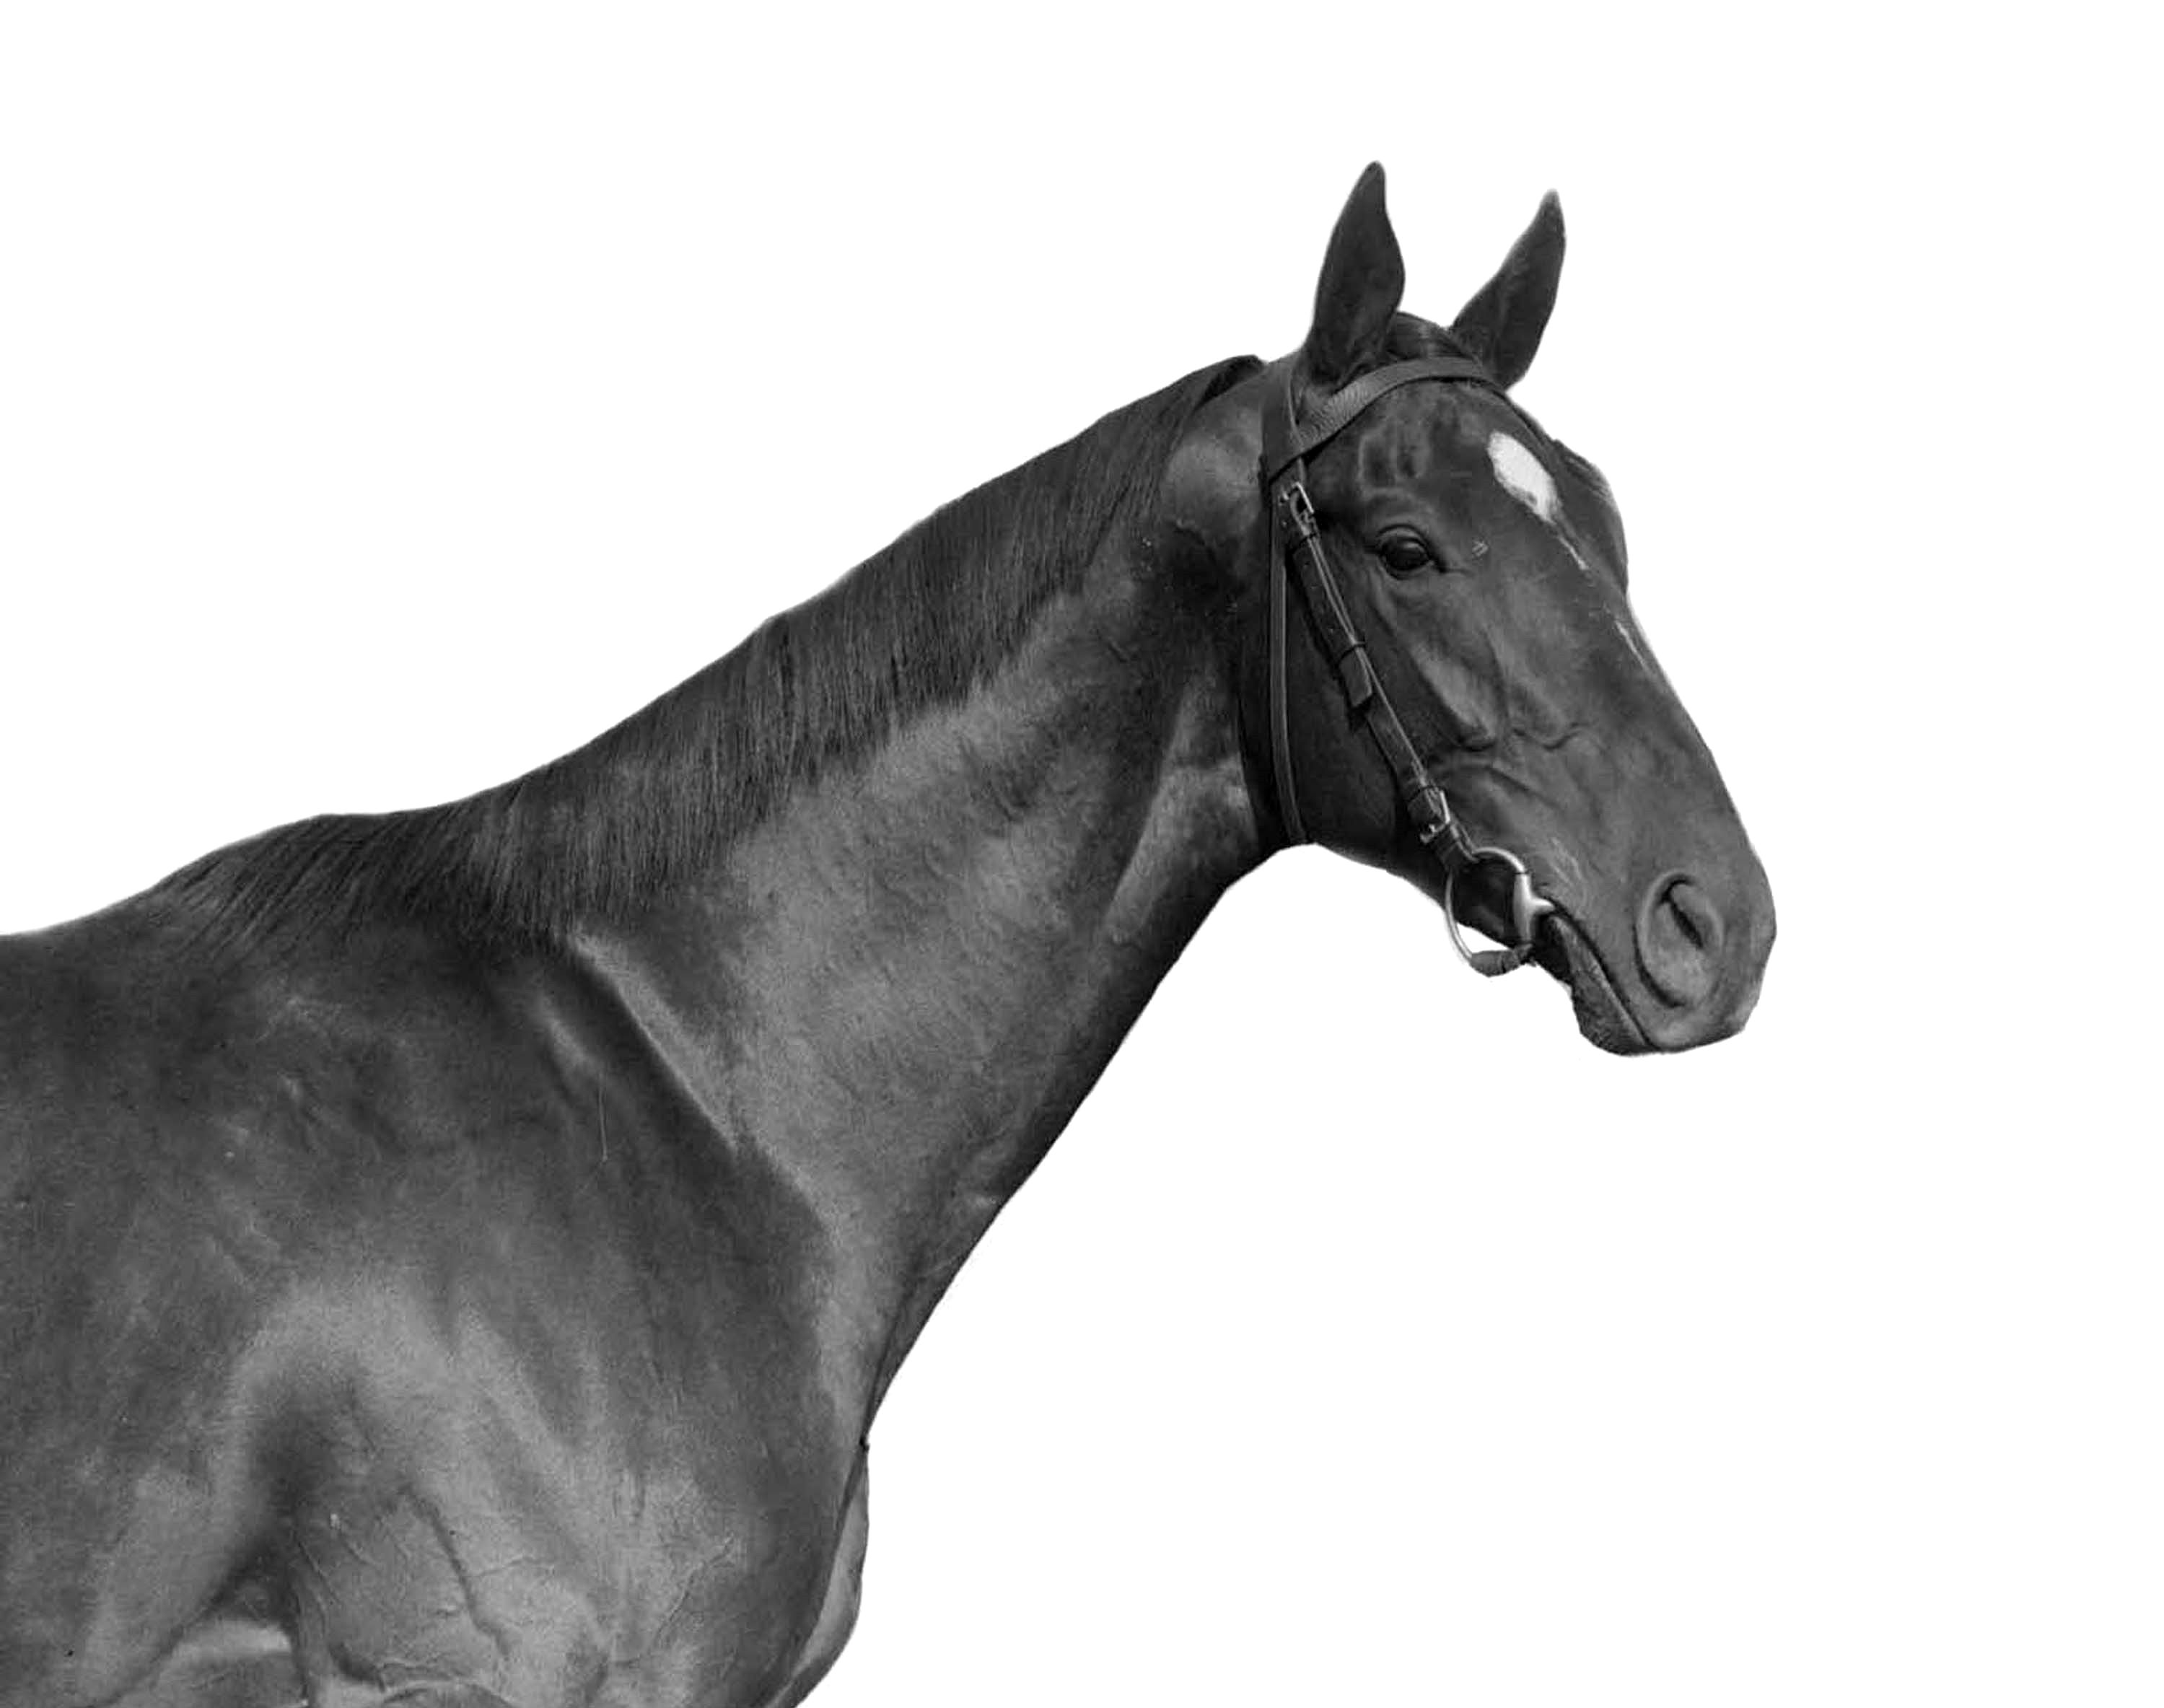 Man o' War (Keeneland Library Cook Collection)